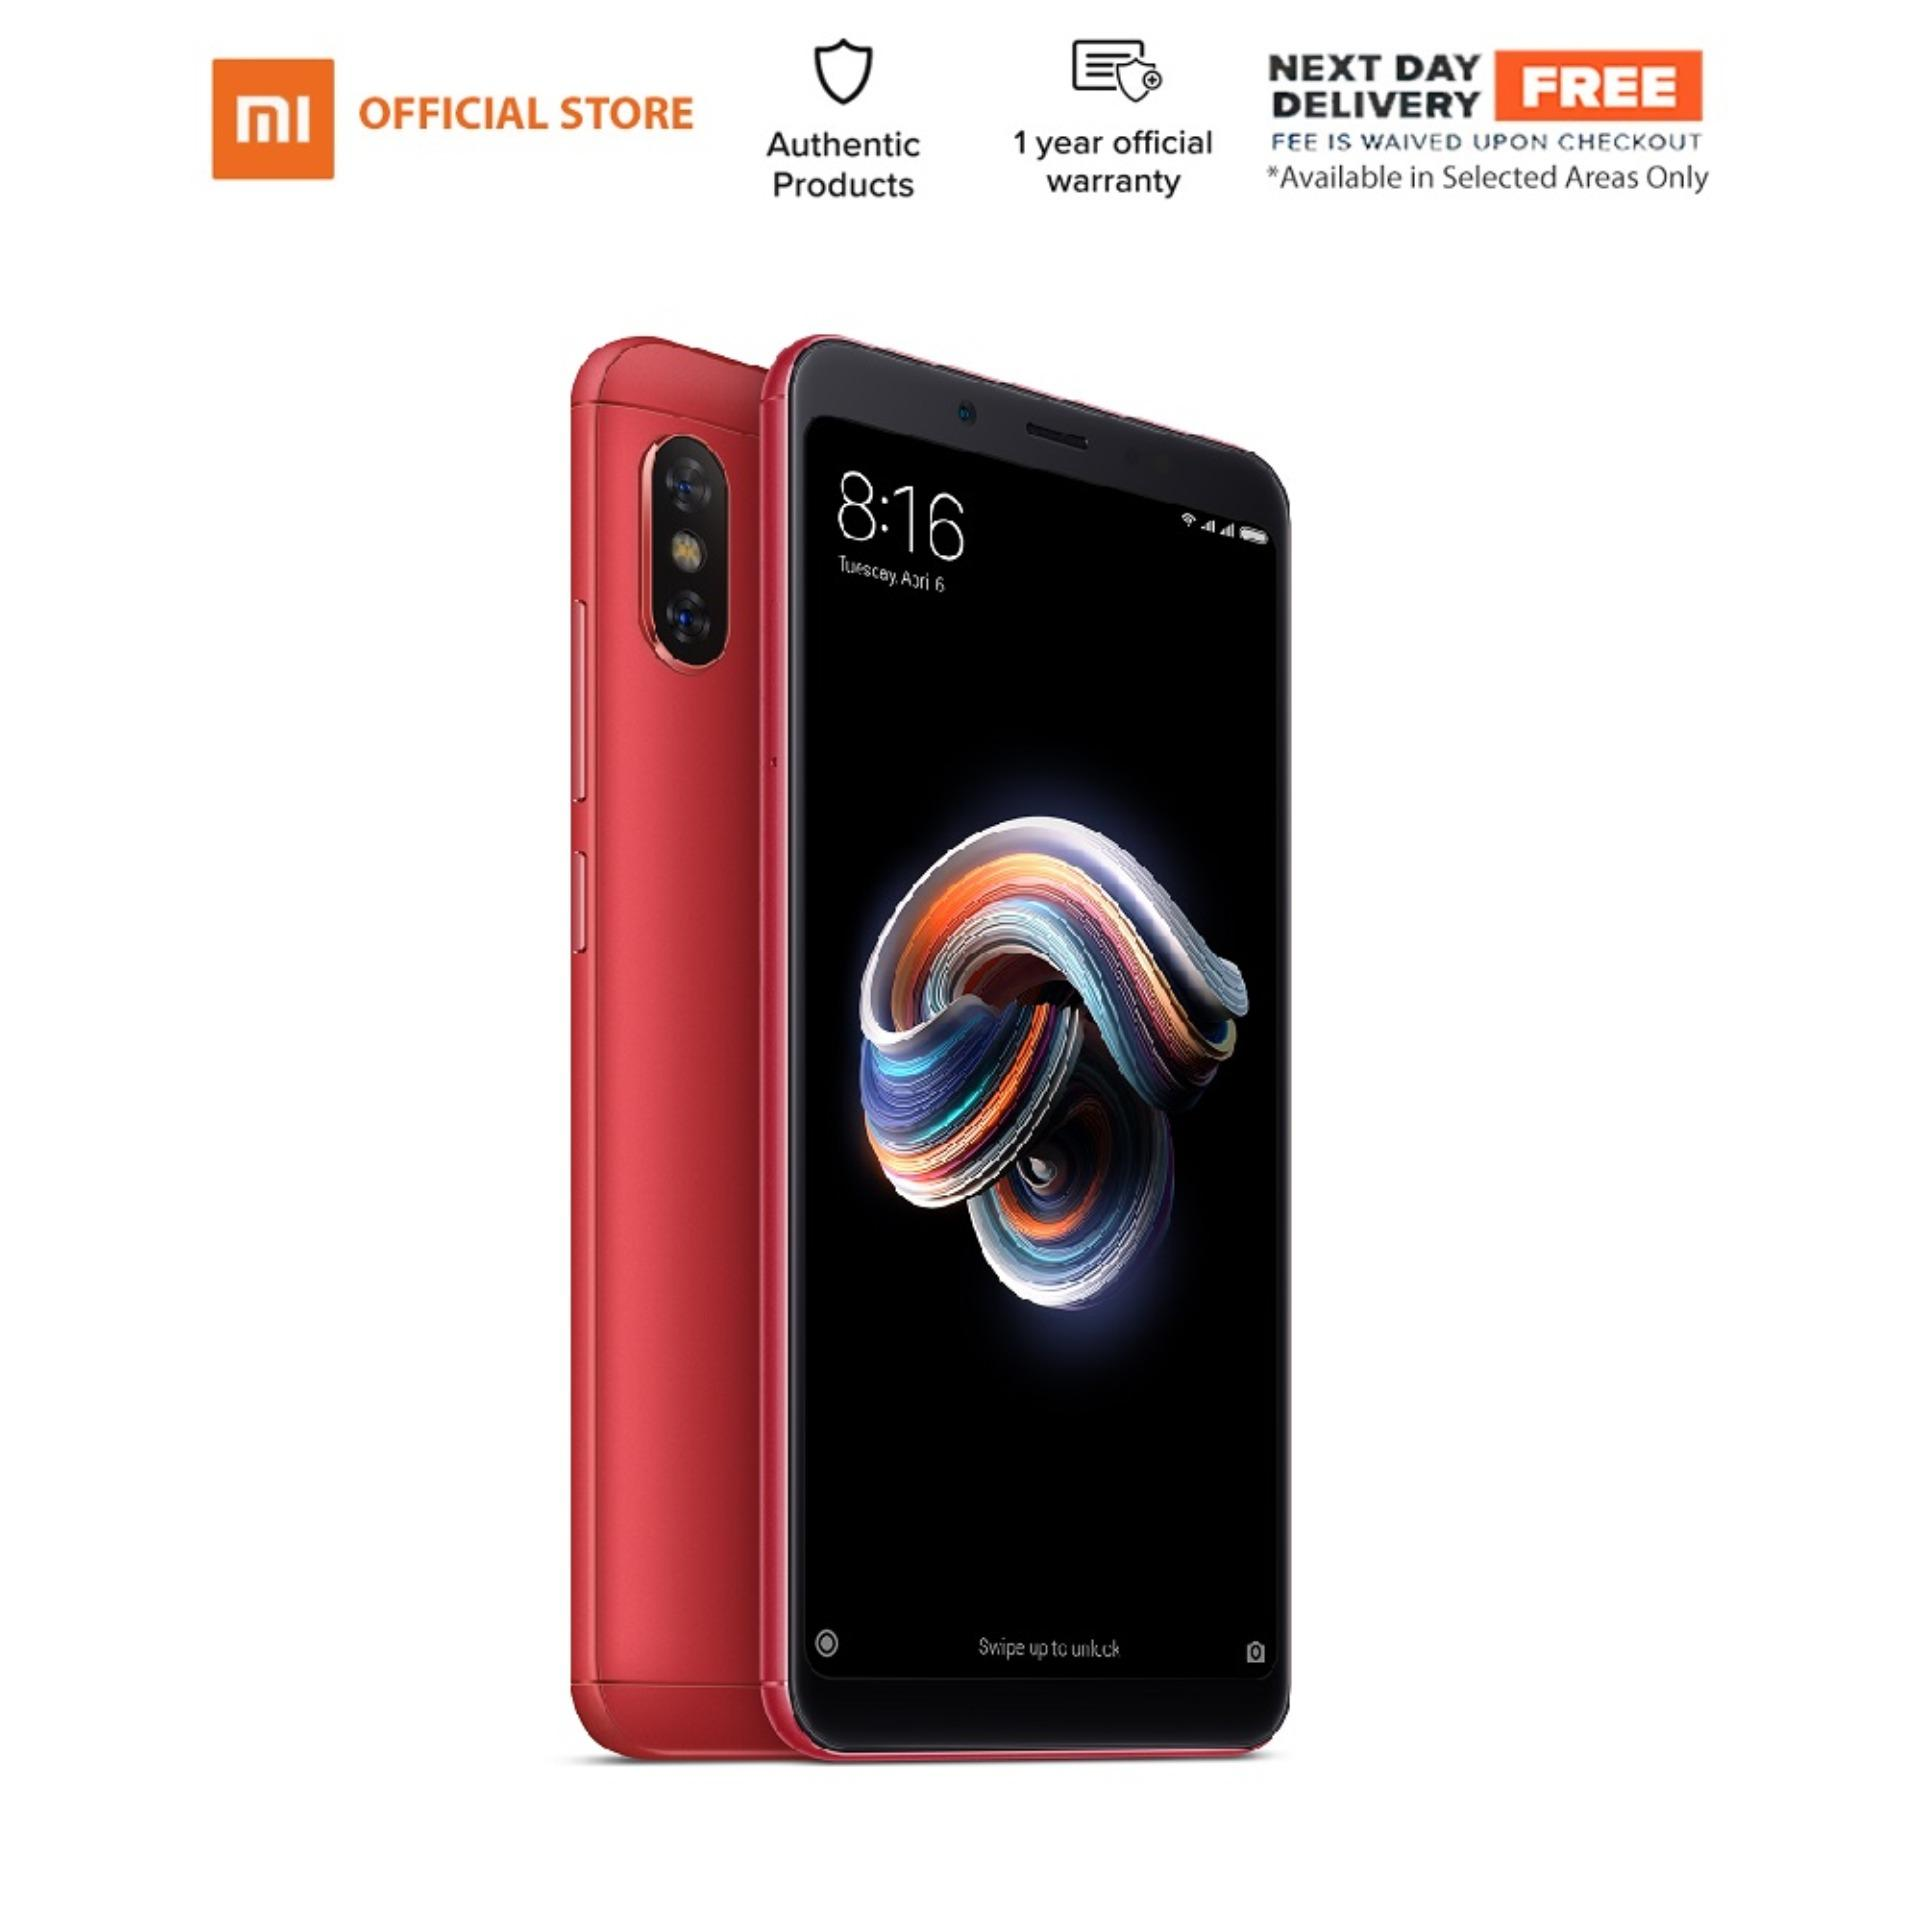 Cheap Xiaomi Phone Products For Sale Lazada Philippines Redmi Note 3 Pro 32 Gb Gold 5 4gb Ram 64gb Rom